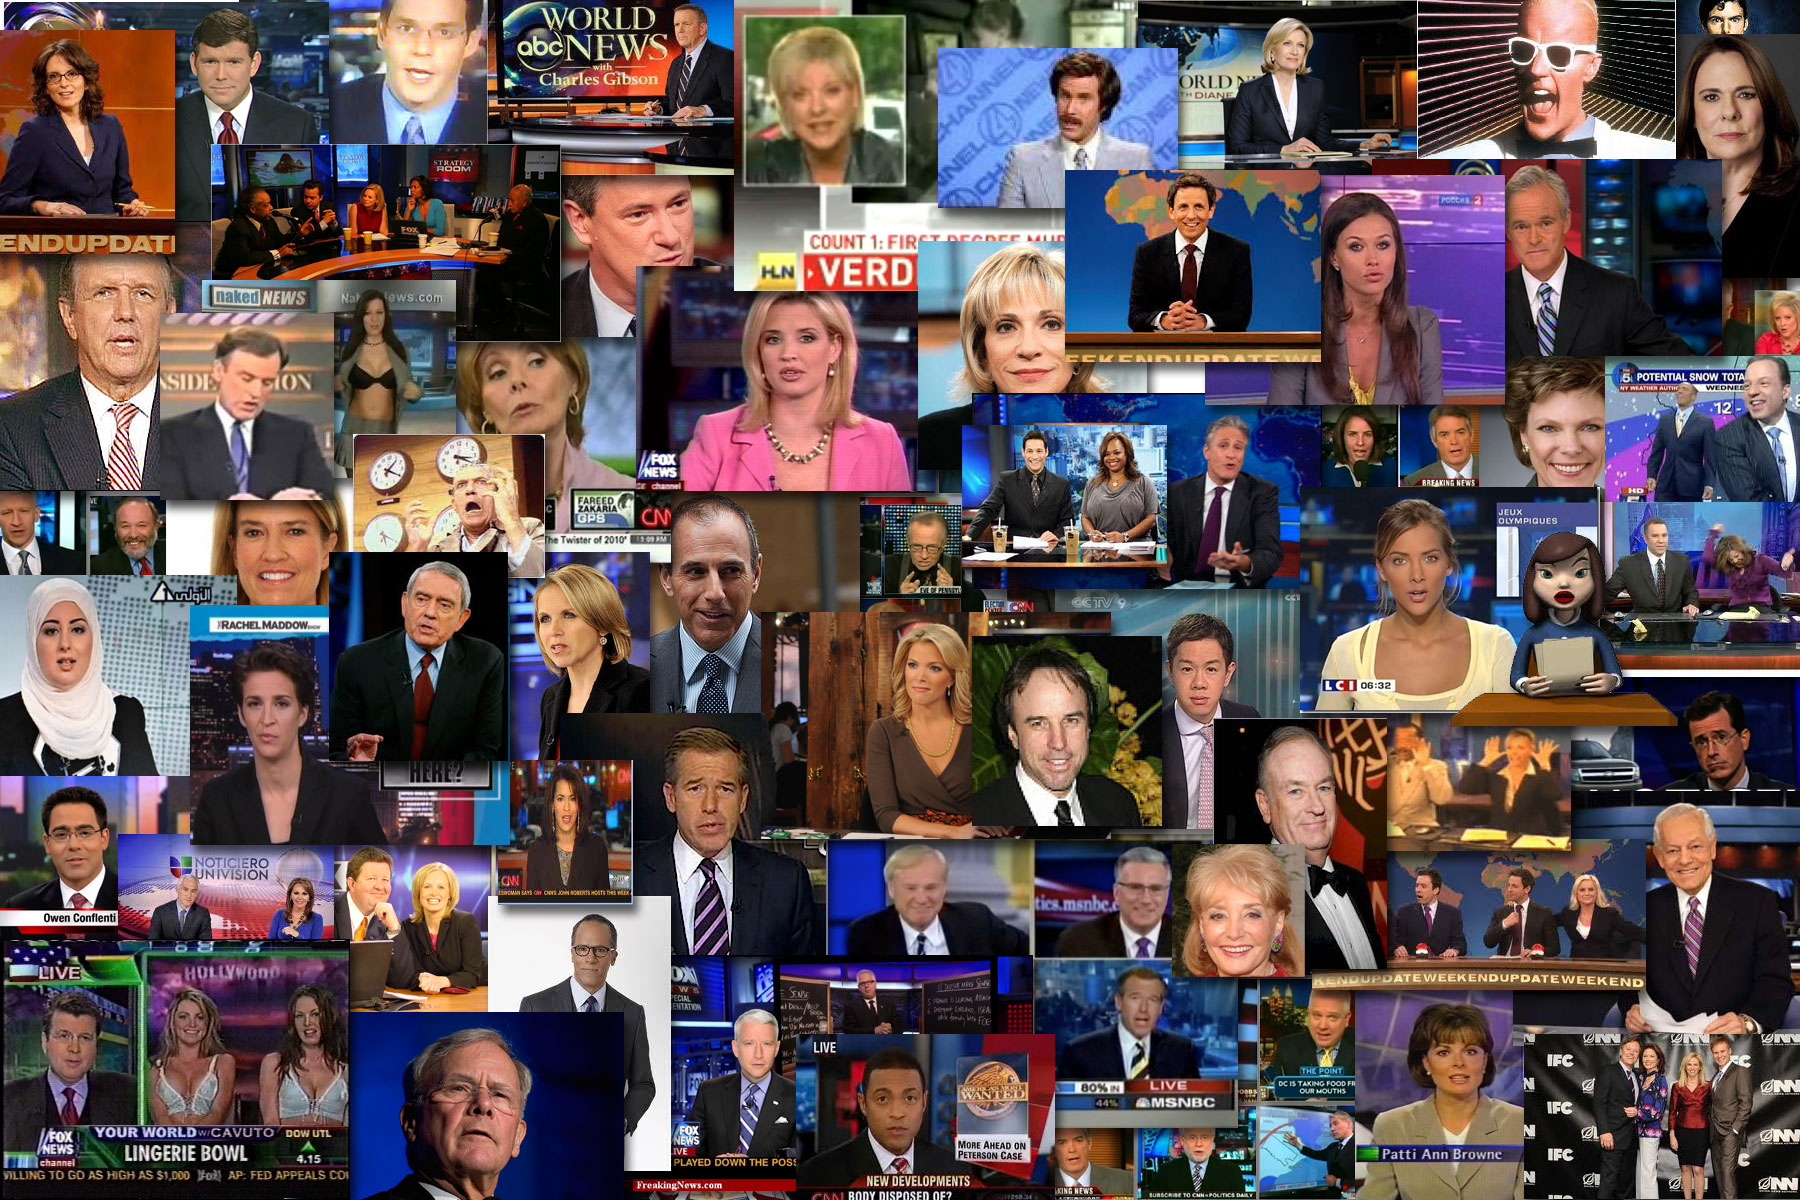 """SCRIPTED NEWS COMPILATION ALL ABOUT """"CONTROLLING THE NARRATIVE"""" AND KEEPING YOU DISTRACTED!!"""